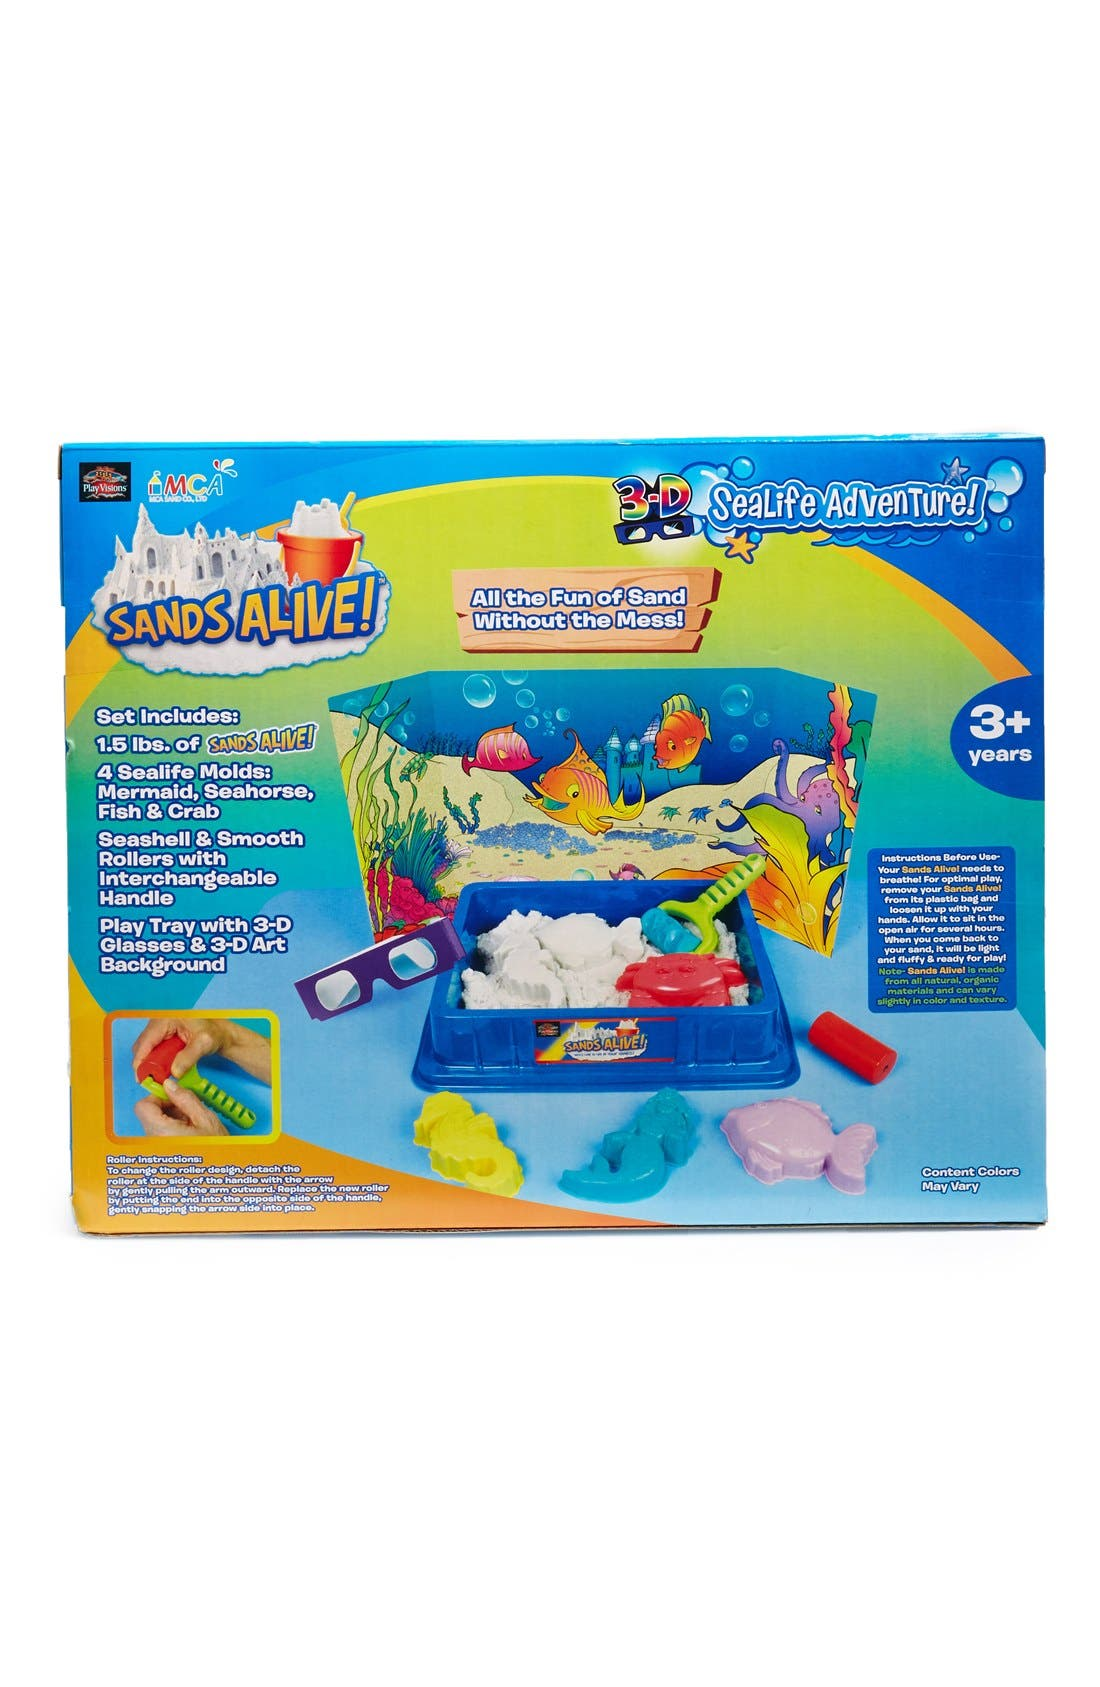 Alternate Image 2  - Play Visions Toys 'Sands Alive! 3D Sea Life Adventure' Indoor Play Sand Kit